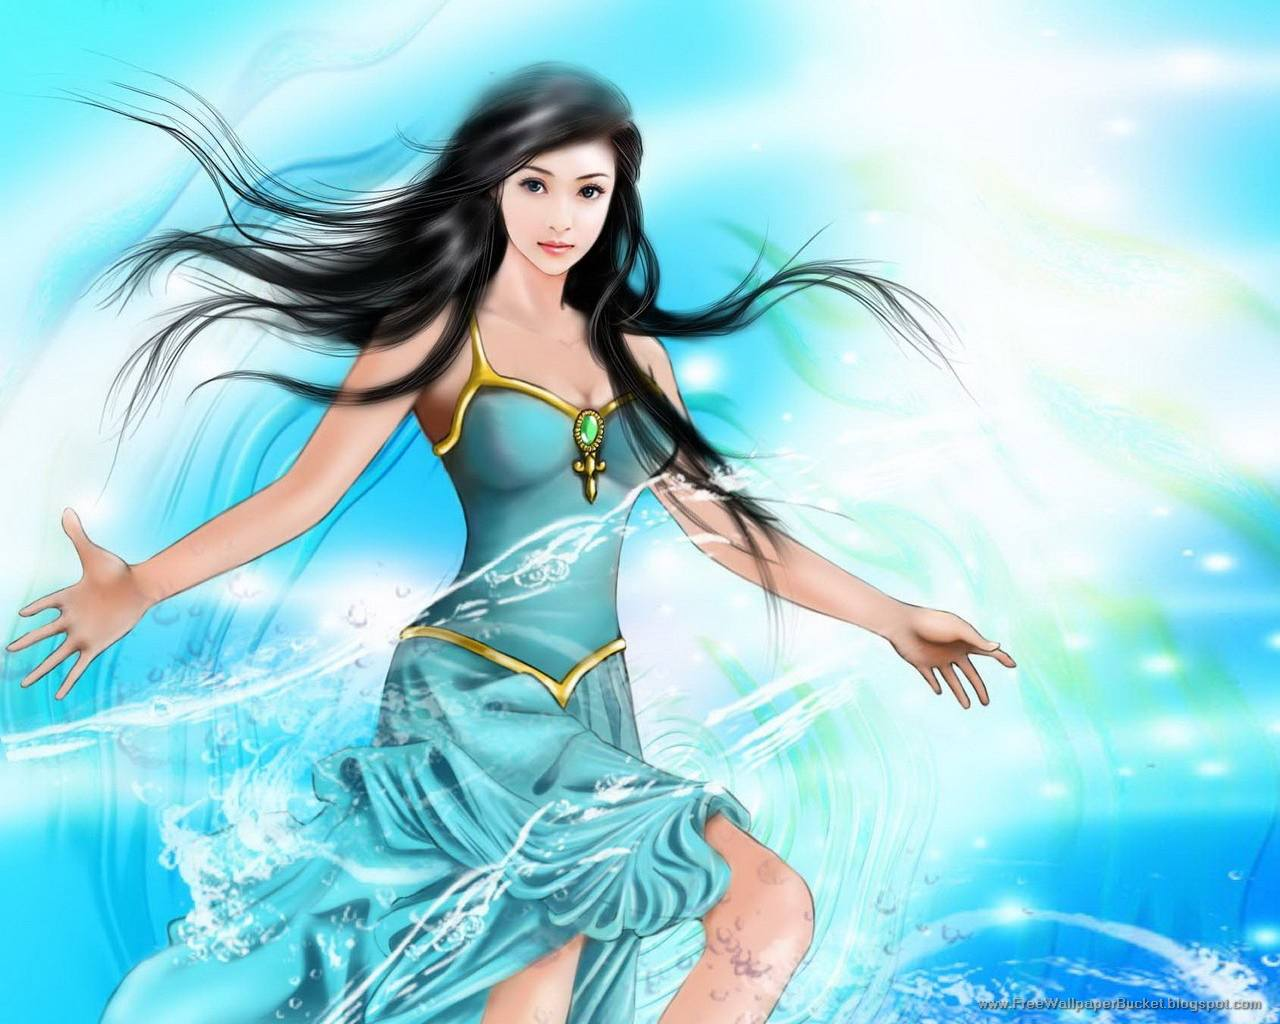 wallpaper mouth: 10 most beautiful fantasy girls wallpapers gallery 03